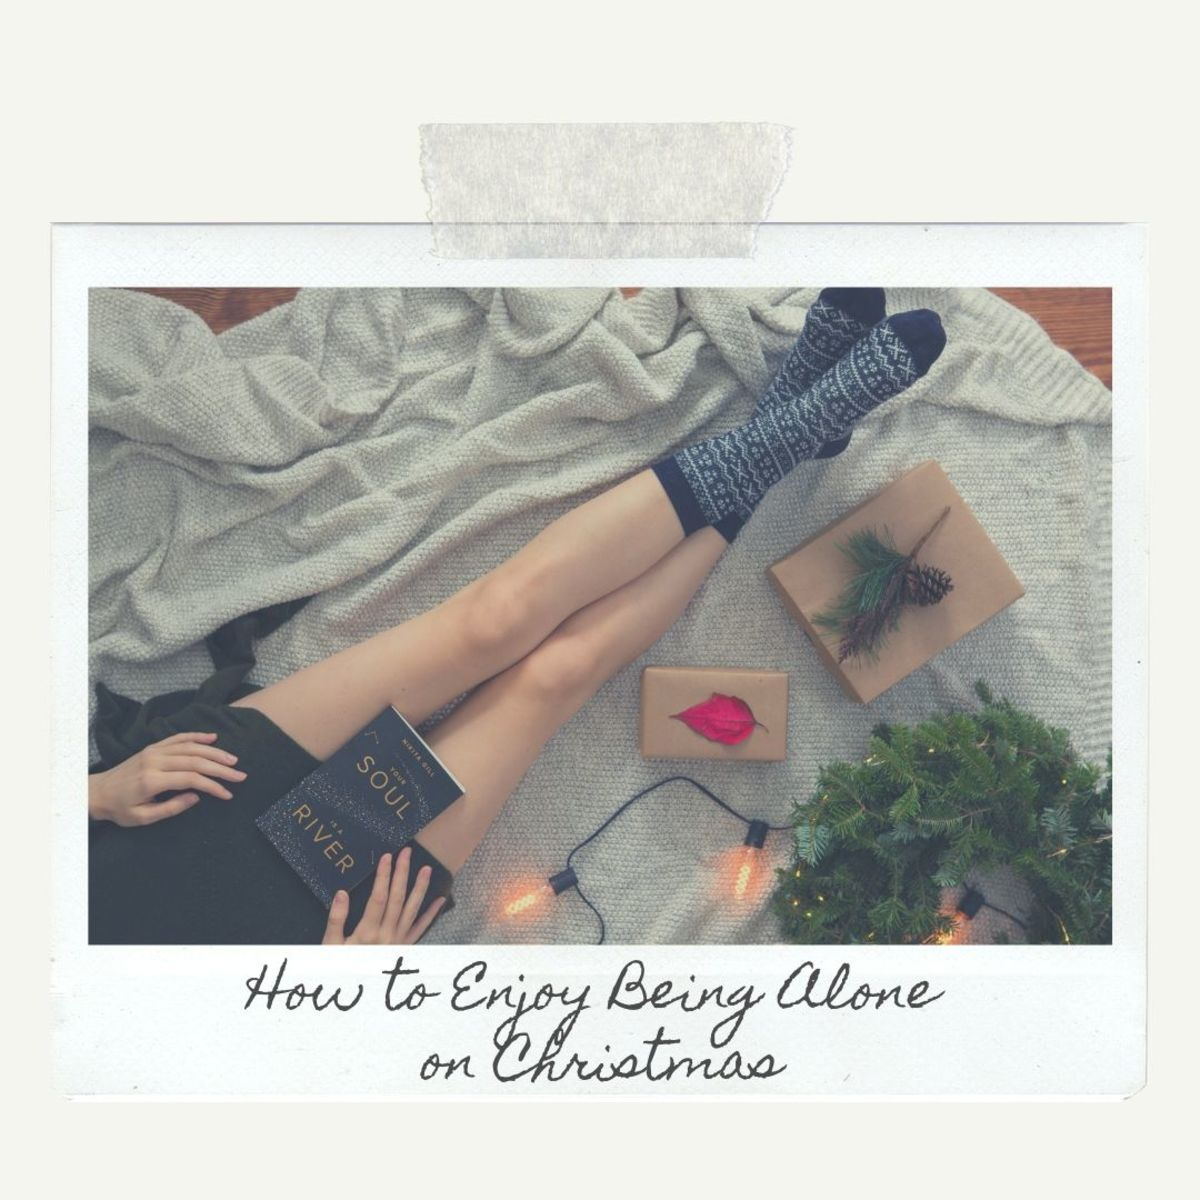 Learn how to make the best out of being alone on Christmas.